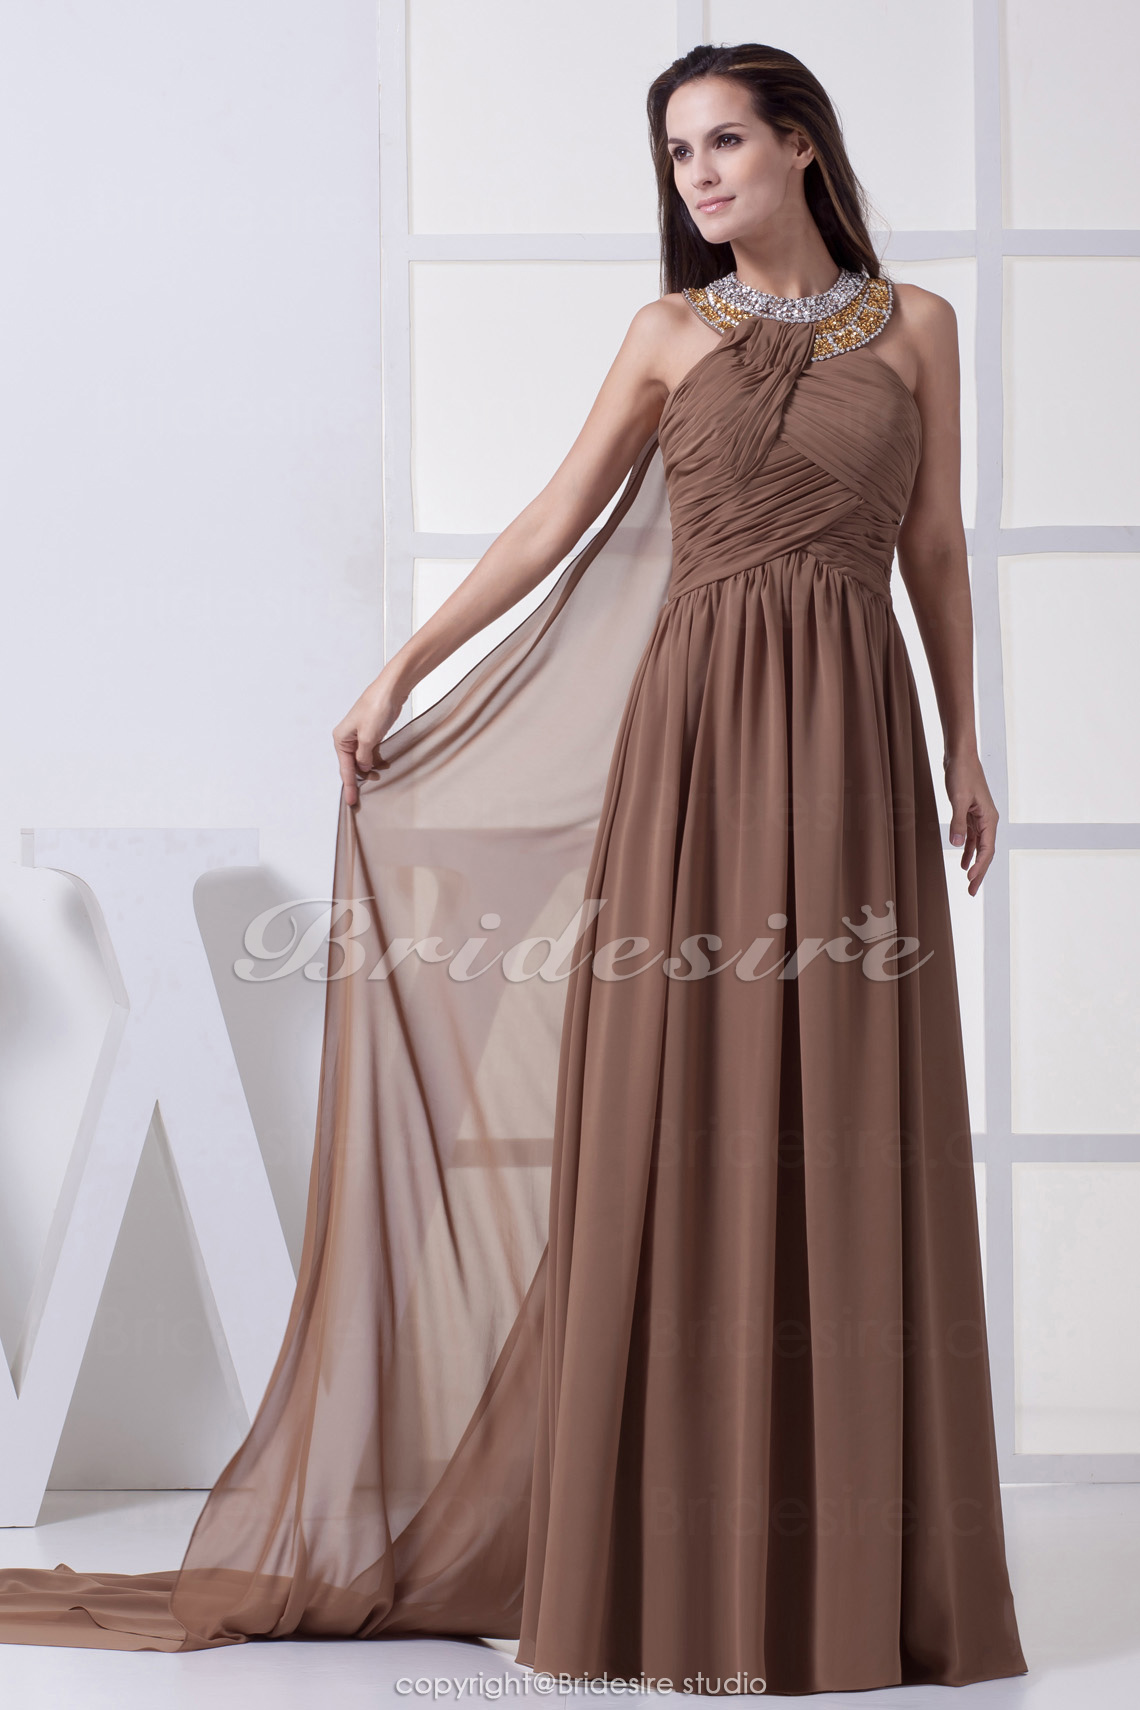 eveningdress-c